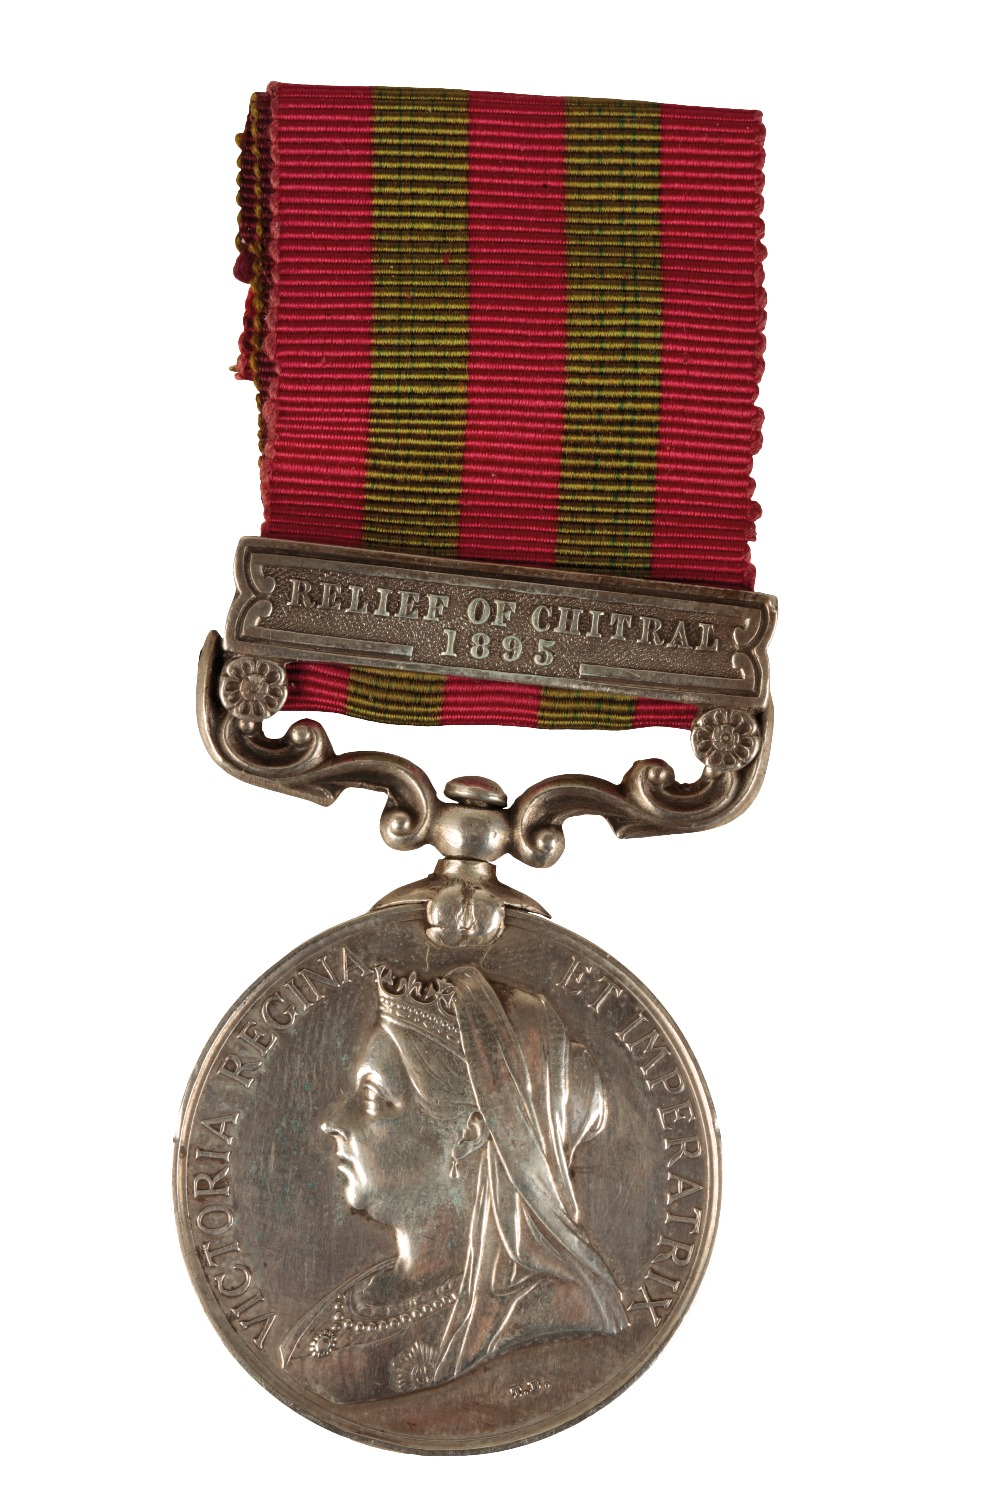 Lot 54 - INDIAN GENERAL SERVICE MEDAL RELIEF OF CHITRAL 1895 TO GNR T HETHERINGTON ROYAL ARTILLERY